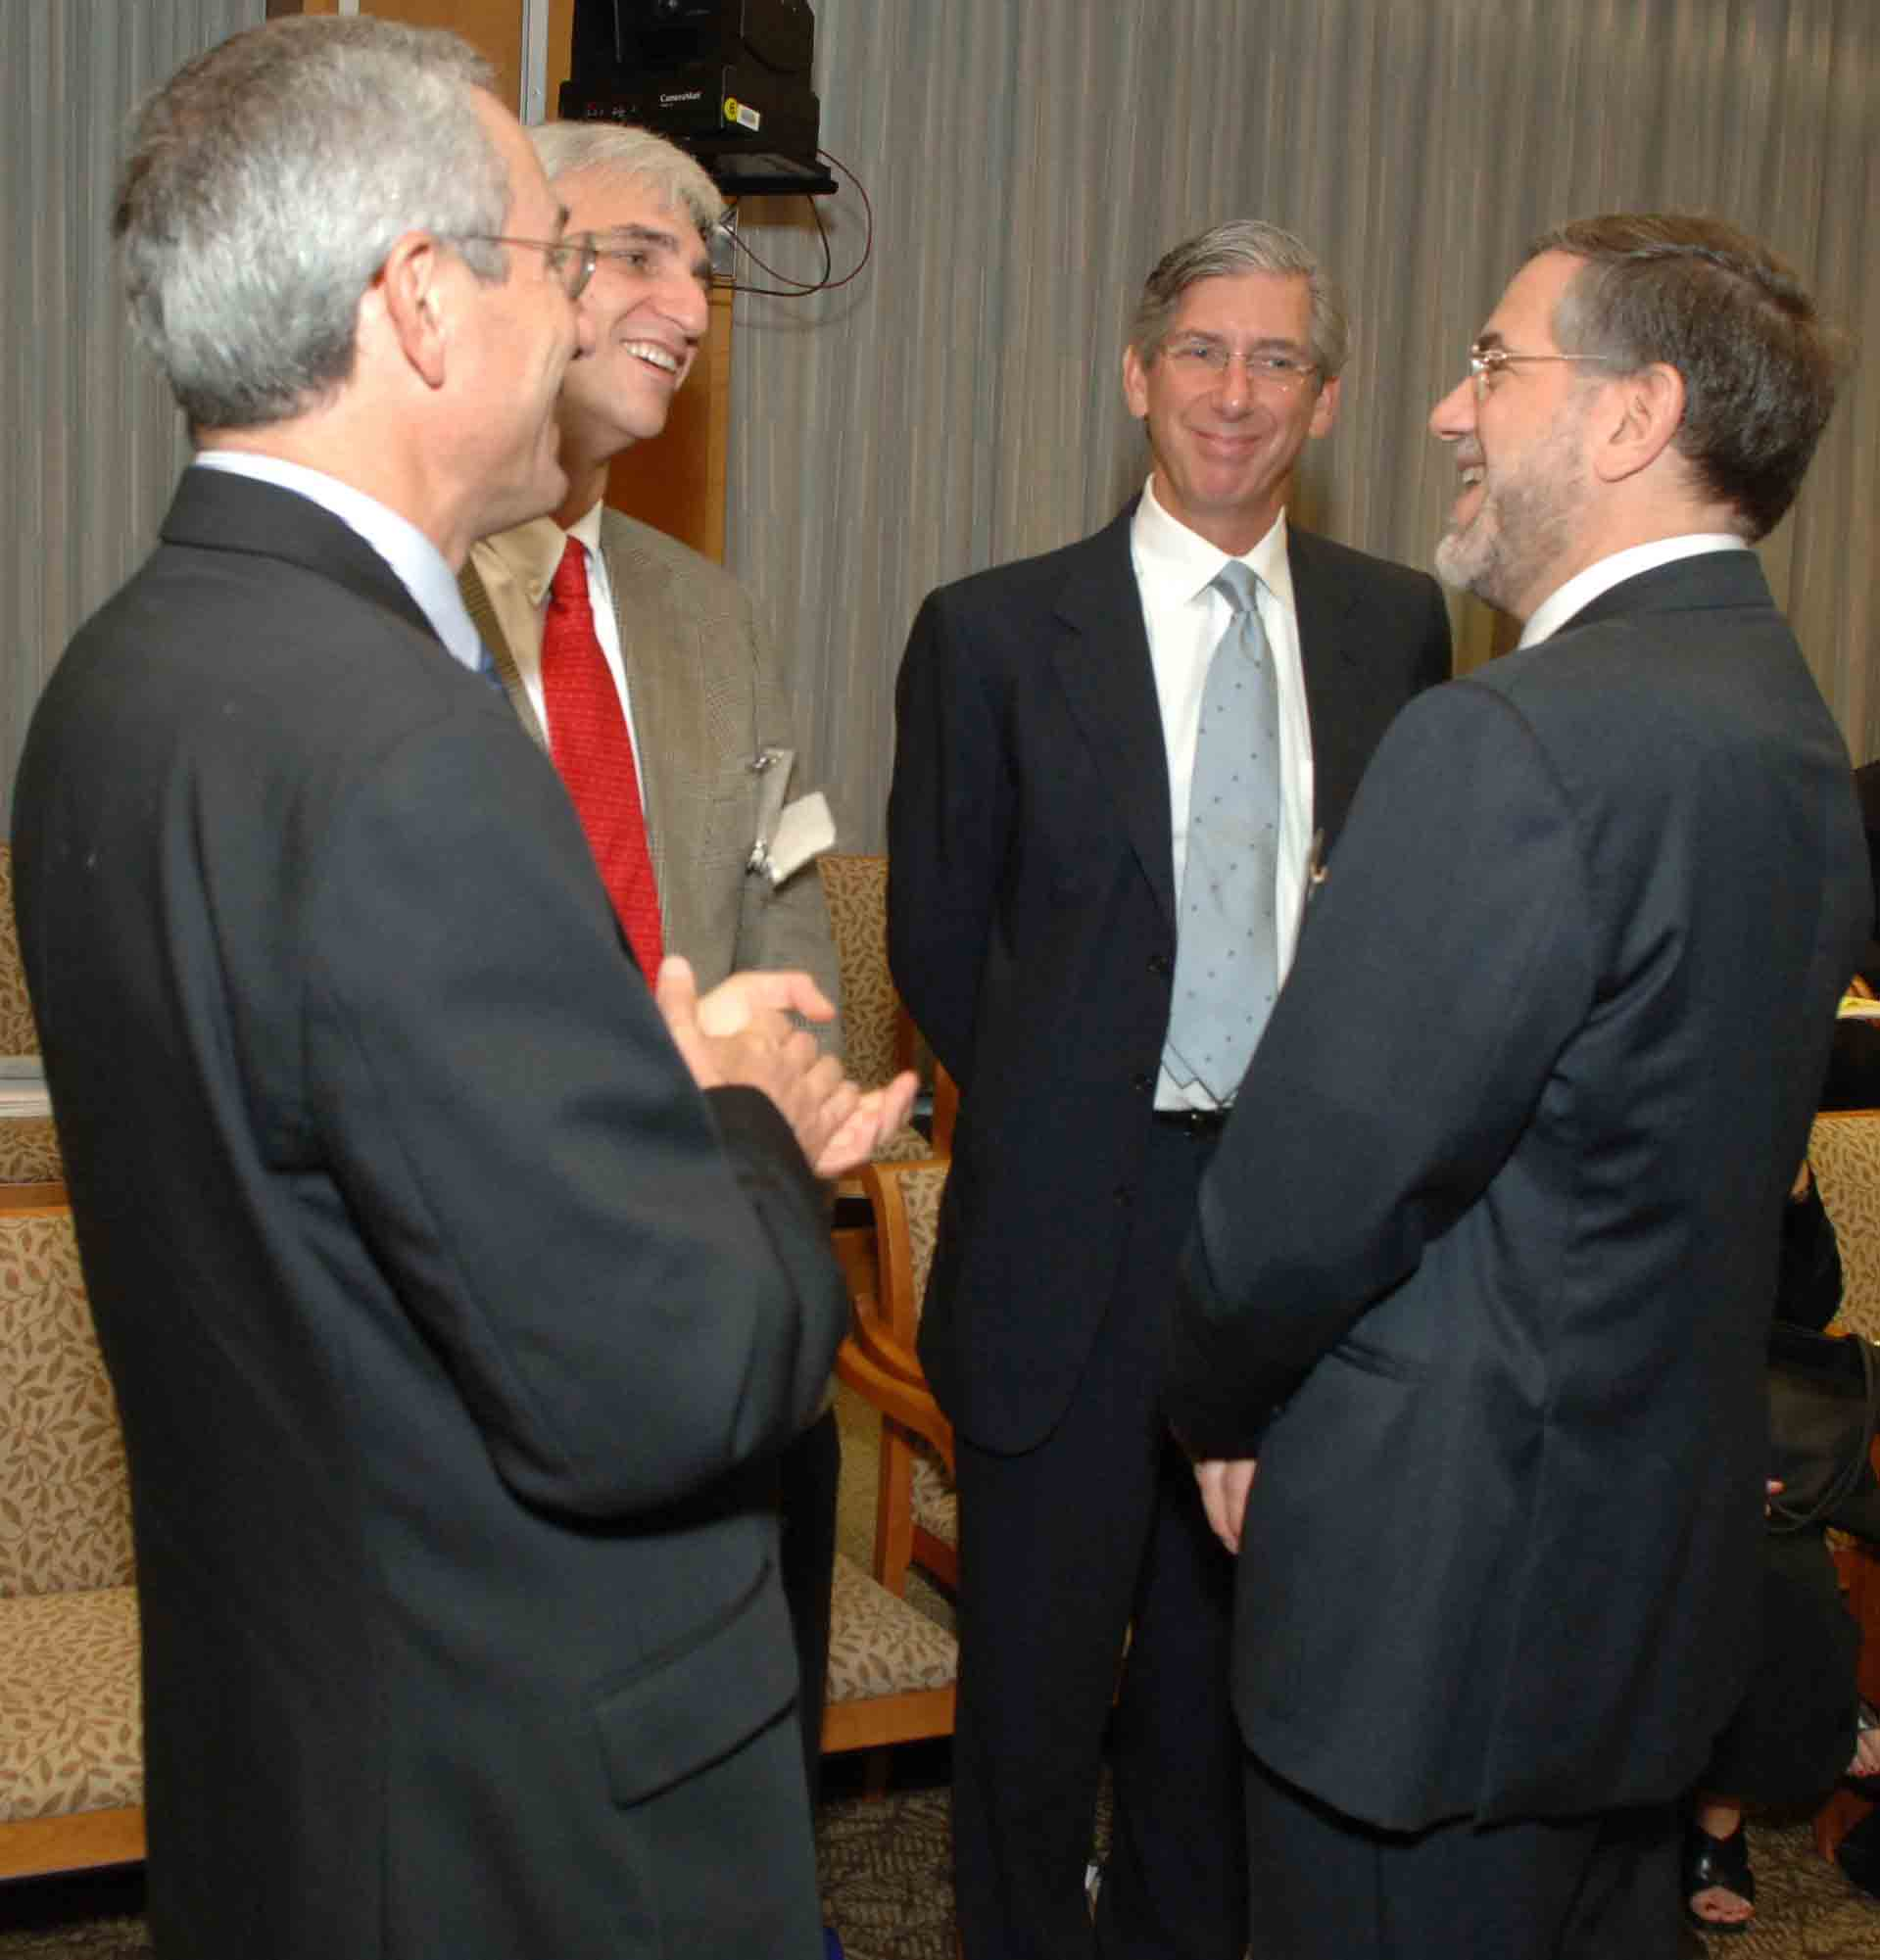 Photo of Doctors Insel and former NIMH Director Steven Hyman, exchange comments with two of the clinical trial presenters-Drs. Gary Sachs and Jeffrey Lieberman